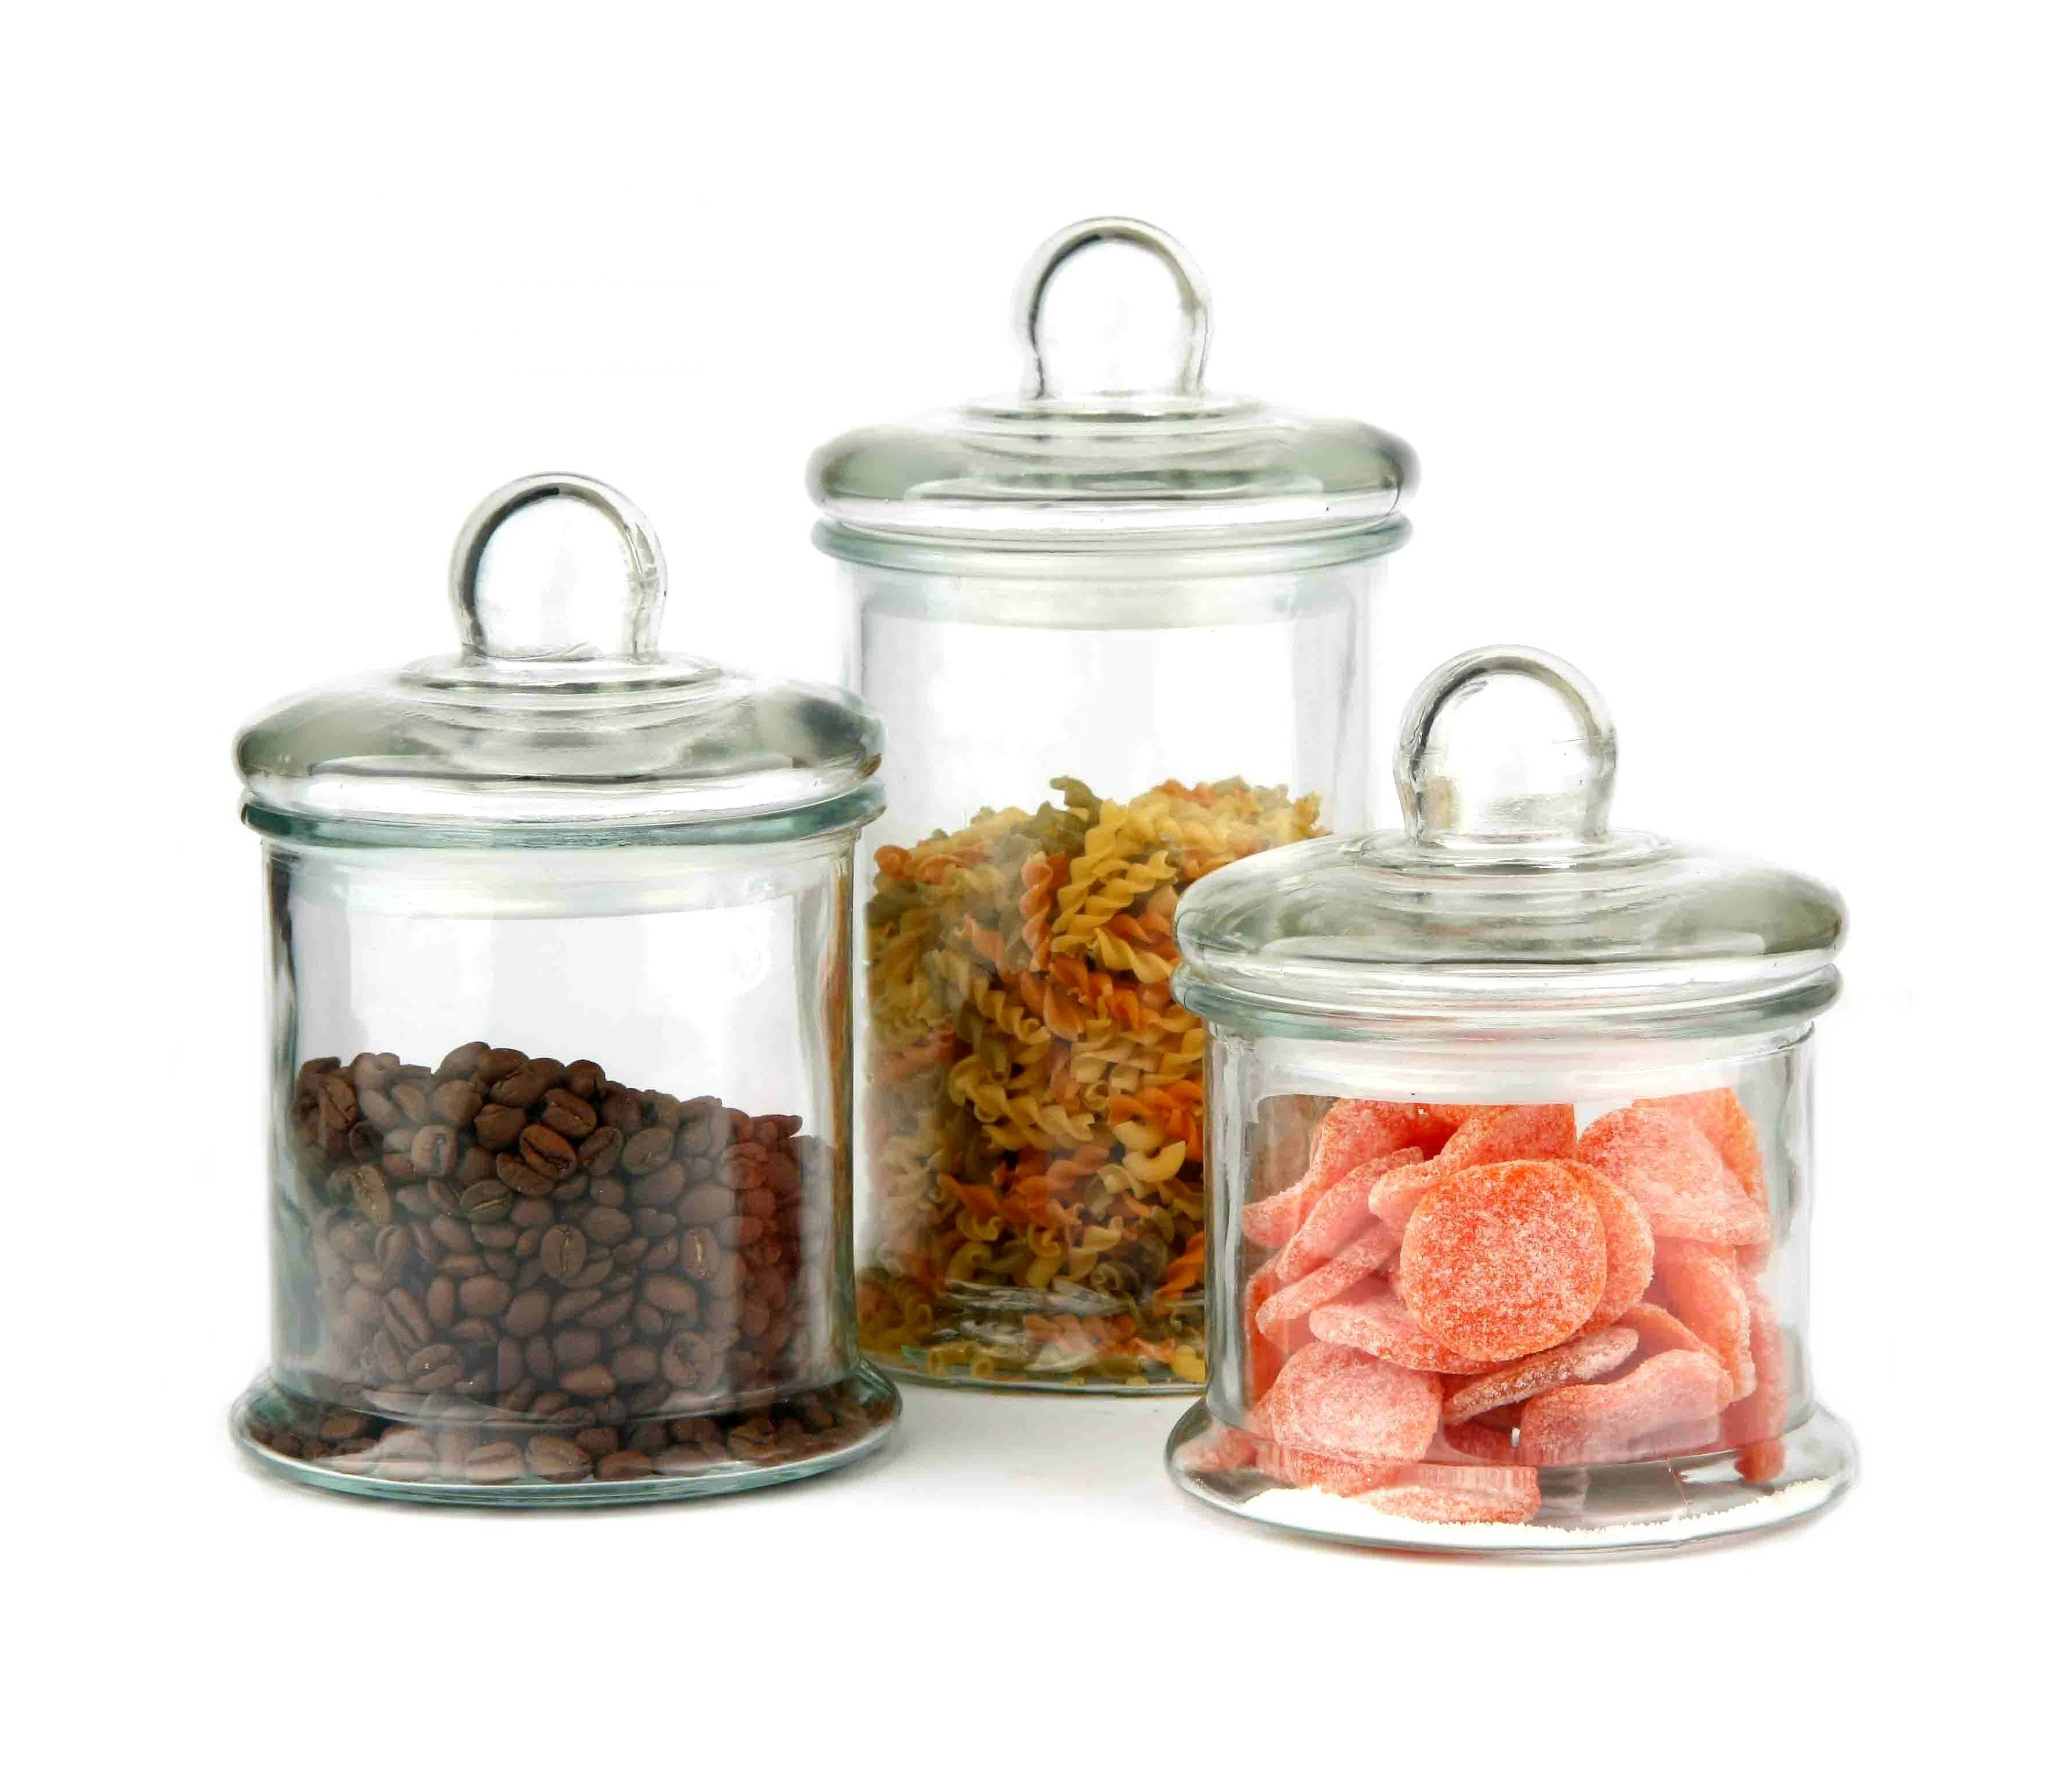 CP114 1700ml,1200ml,1000ml,650ml glass jar with glass lid for food storage